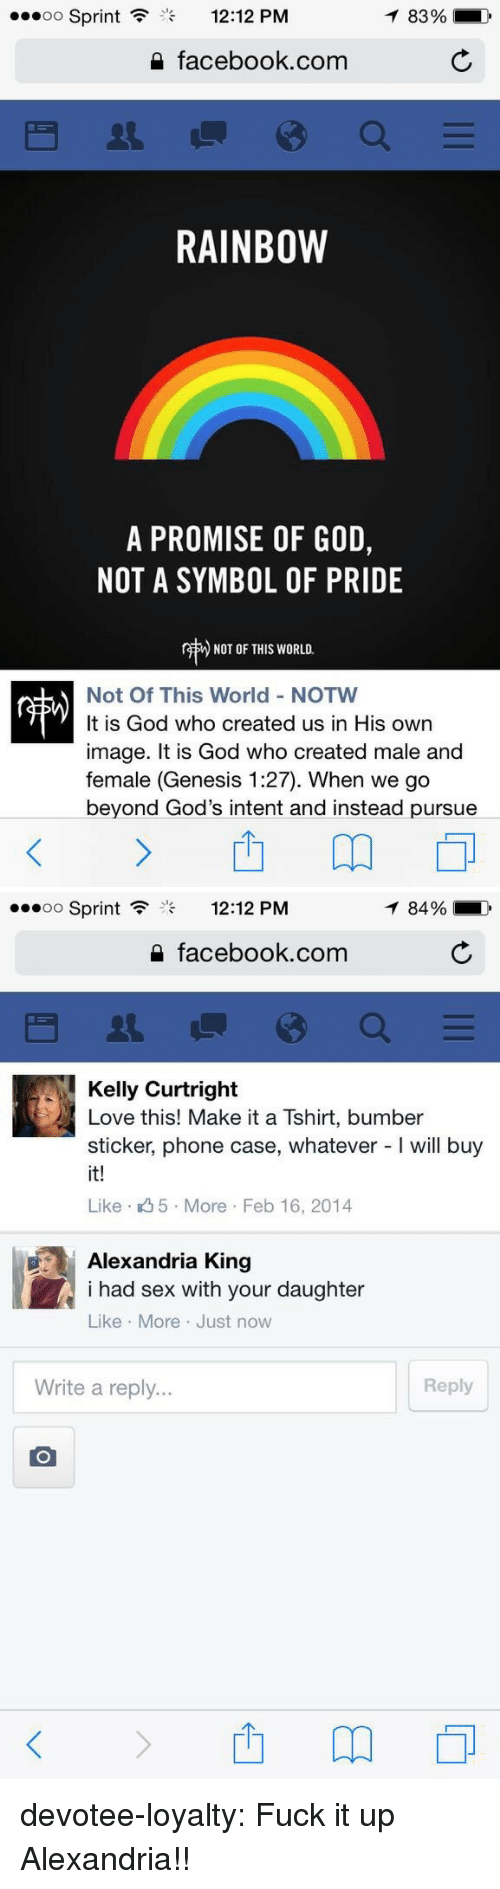 Facebook, God, and Love: Sprint  12:12 PM  83%  2 facebook.com  RAINBOW  A PROMISE OF GOD,  NOT A SYMBOL OF PRIDE  r  ) NOT OF THIS WORLD.  Not Of This World - NOTW  It is God who created us in His own  image. It is God who created male and  female (Genesis 1:27). When we go  beyond God's intent and instead pursue   oo Sprint  12:12 PM  84%  2 facebook.com  Kelly Curtright  Love this! Make it a Tshirt, bumber  sticker, phone case, whatever - will buy  it!  Like 5 More Feb 16, 2014  Alexandria King  i had sex with your daughter  Like More Just now  Write a reply...  Reply devotee-loyalty: Fuck it up Alexandria!!